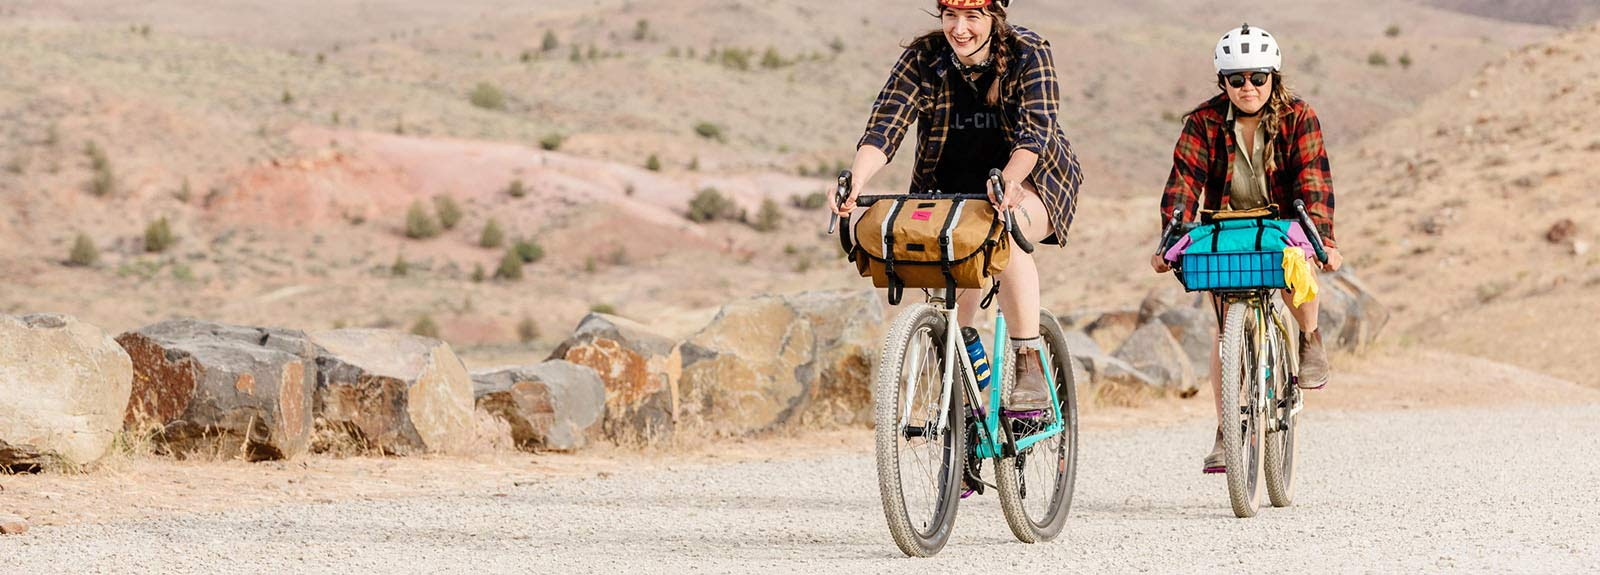 Person riding Gorilla Monsoon bike in Aqua Seafoam color on rocky desert road with front bag attached to handlebar